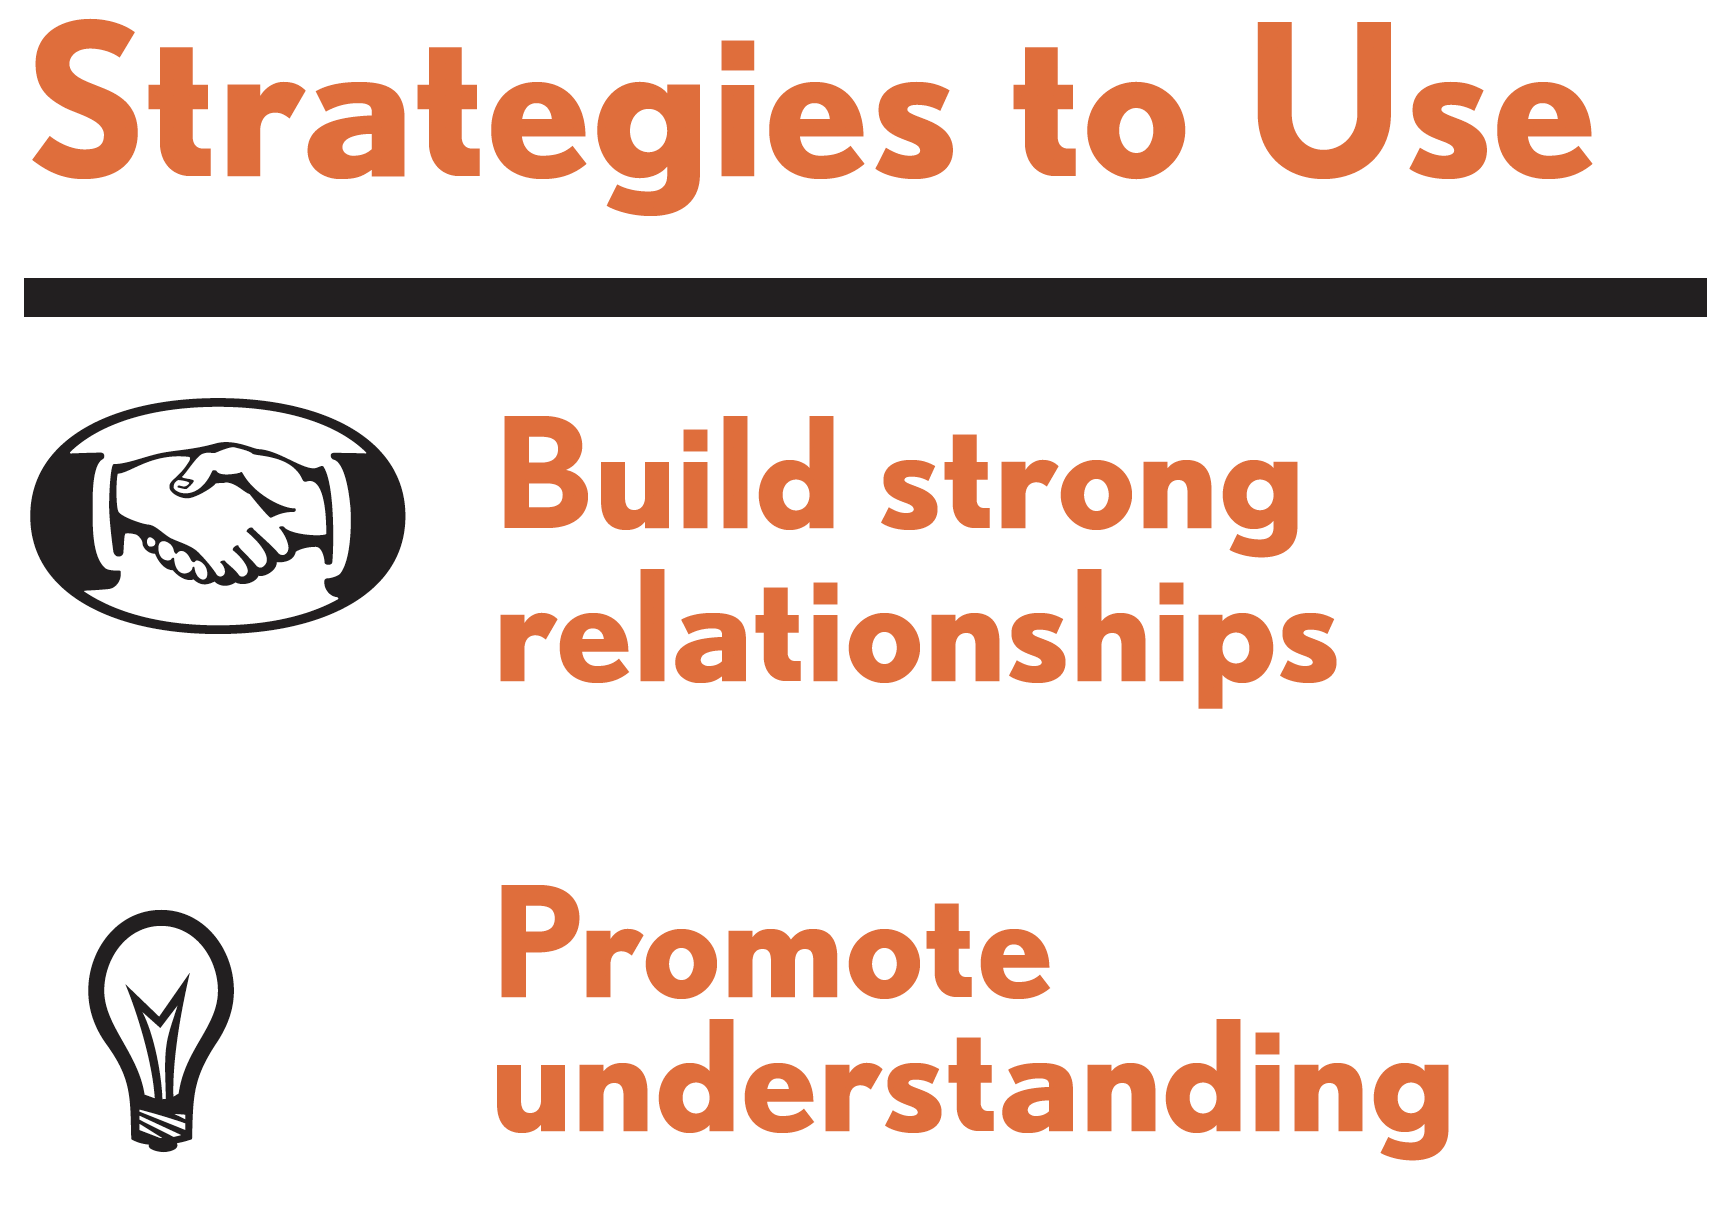 Picture of strategies to use for this tactic. Strategies include: build strong relationships; and promote understanding.